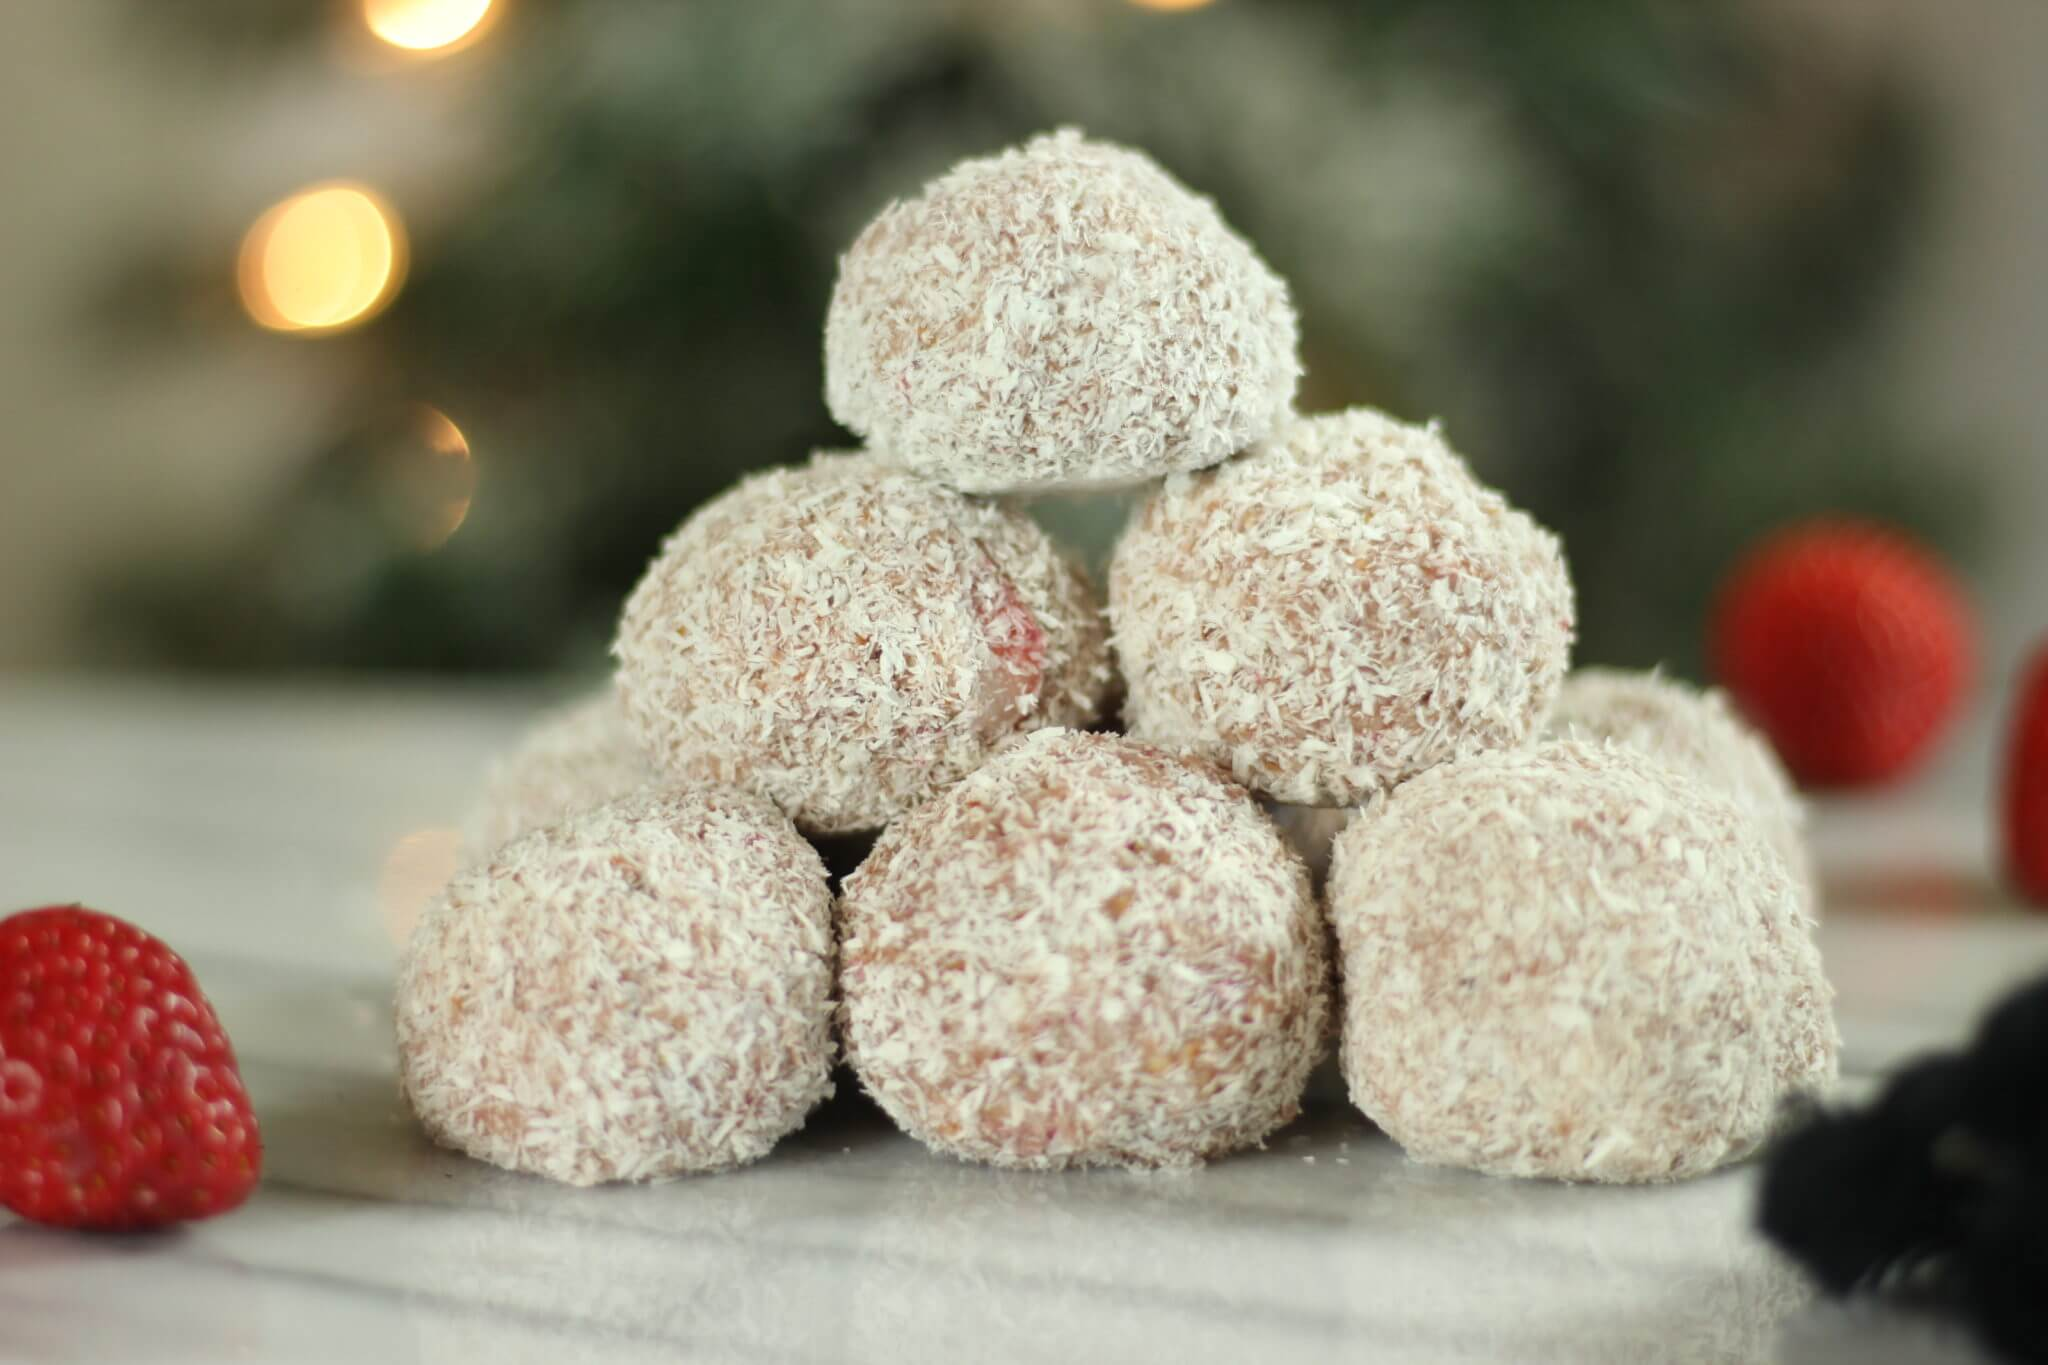 Strawberry Snowballs